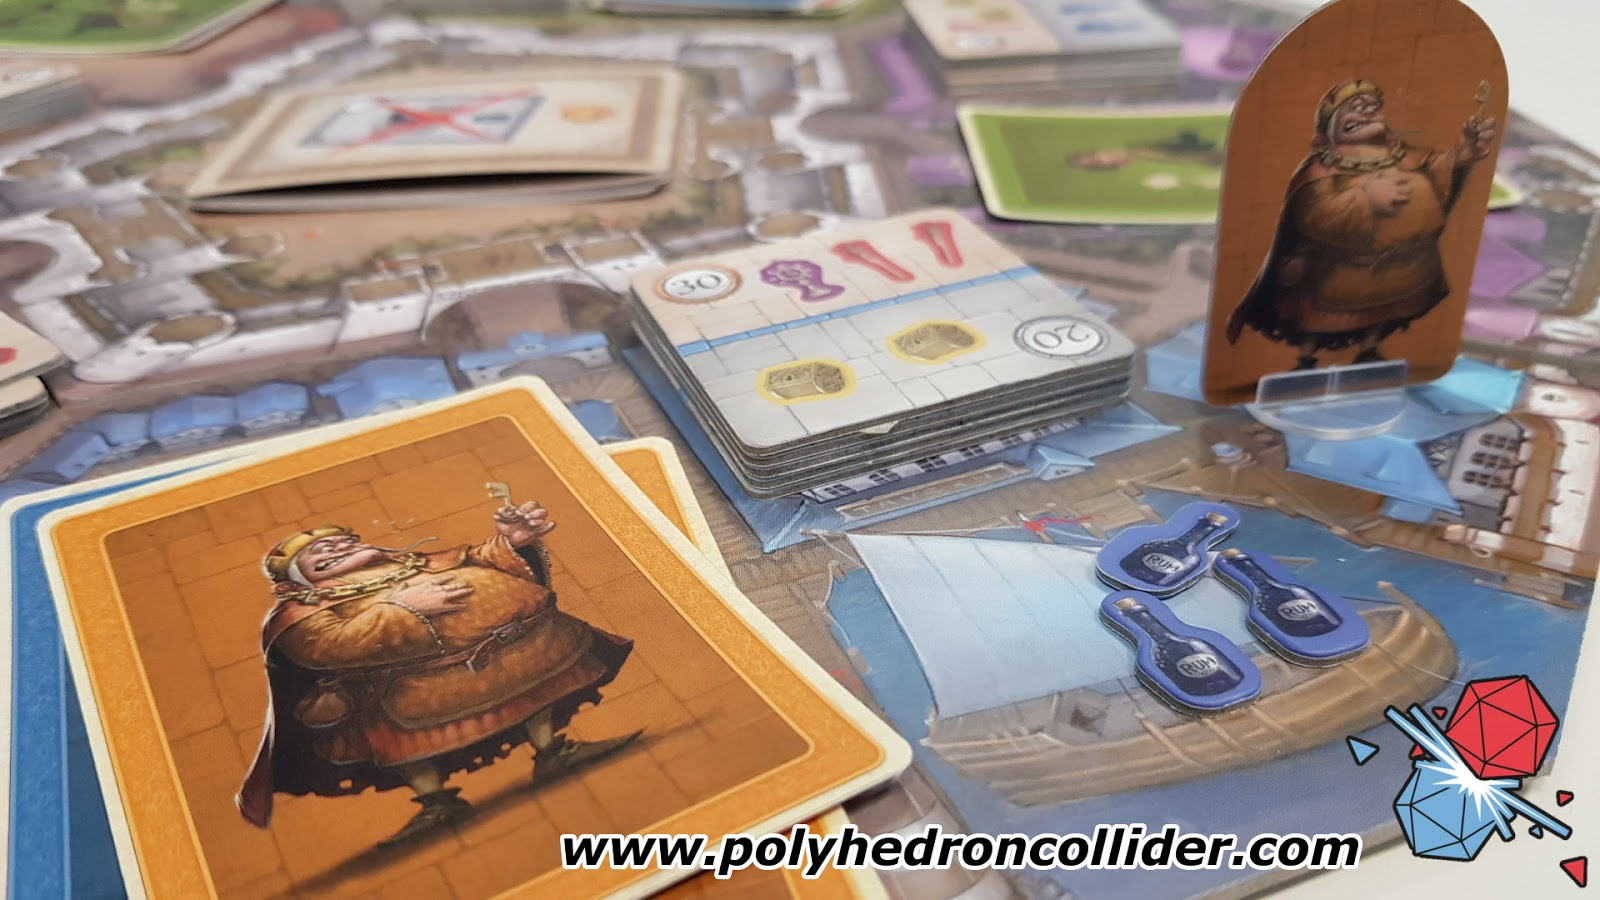 Polyhedron Collider Slyville Board Game Review - In Play Close Up